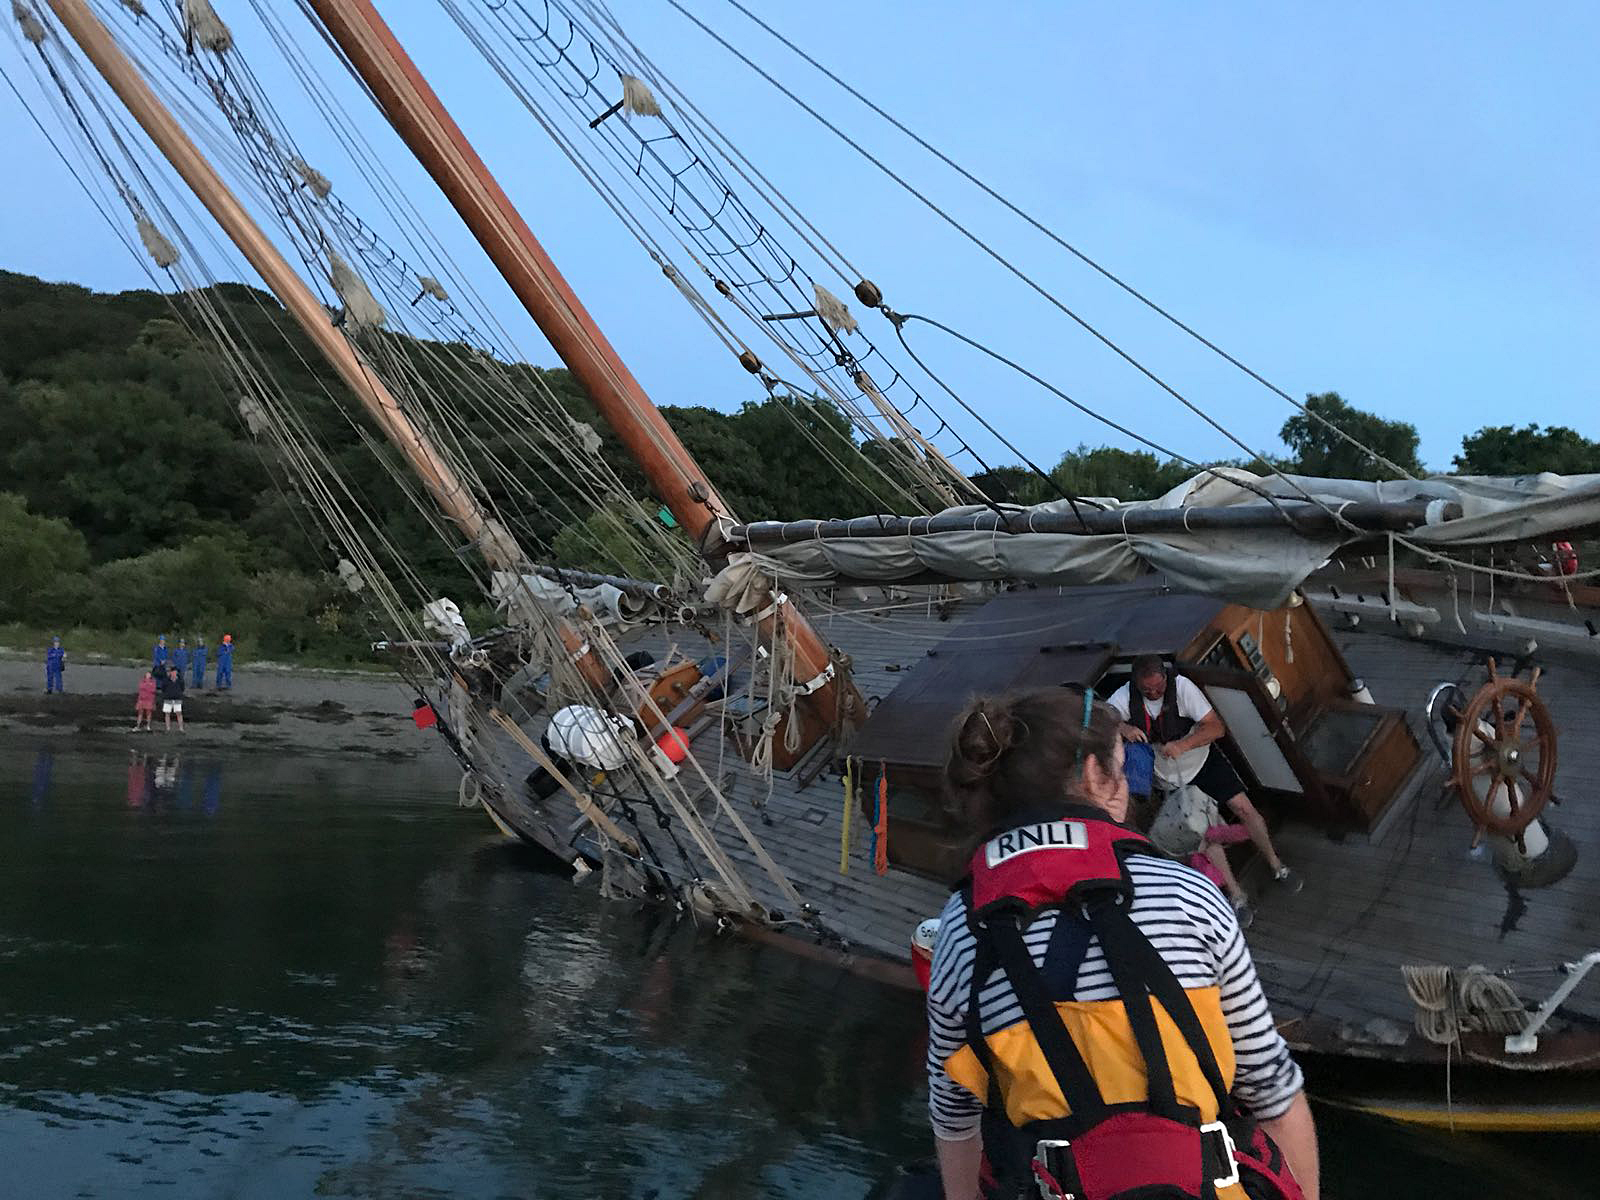 The schooner aground at Turnaware Point after suffering a mechanical failure